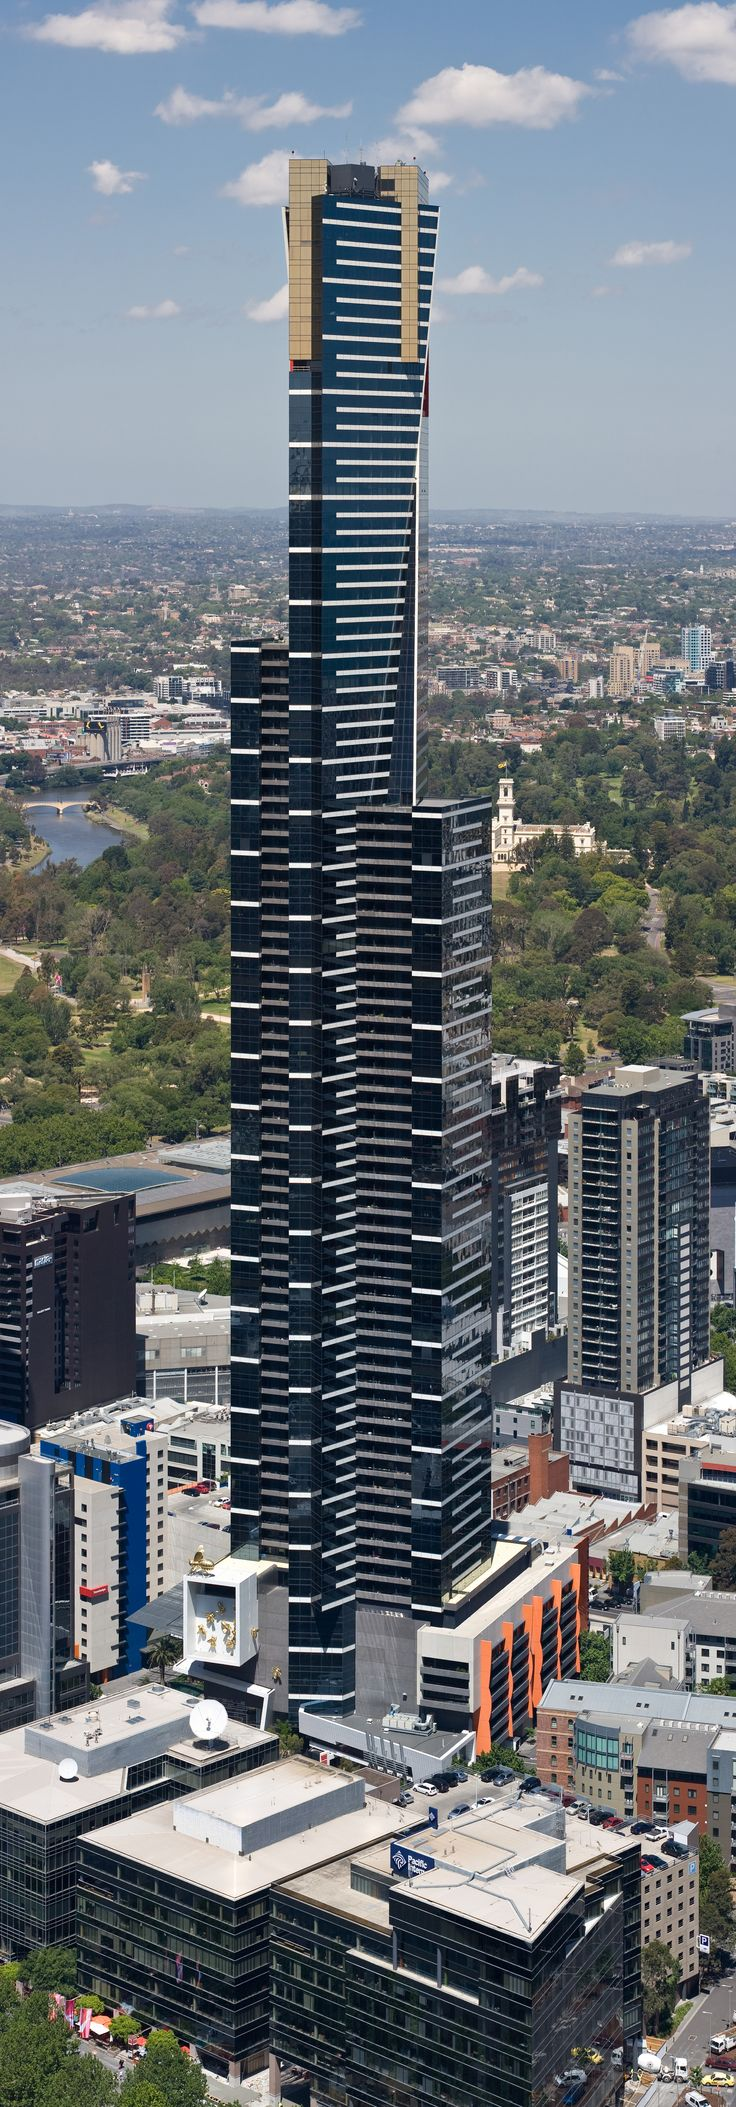 "Visit Eureka Tower (297.3-metre/975 ft) skyscraper located in Melbourne, Victoria, Australia and experience the ""Cube"""